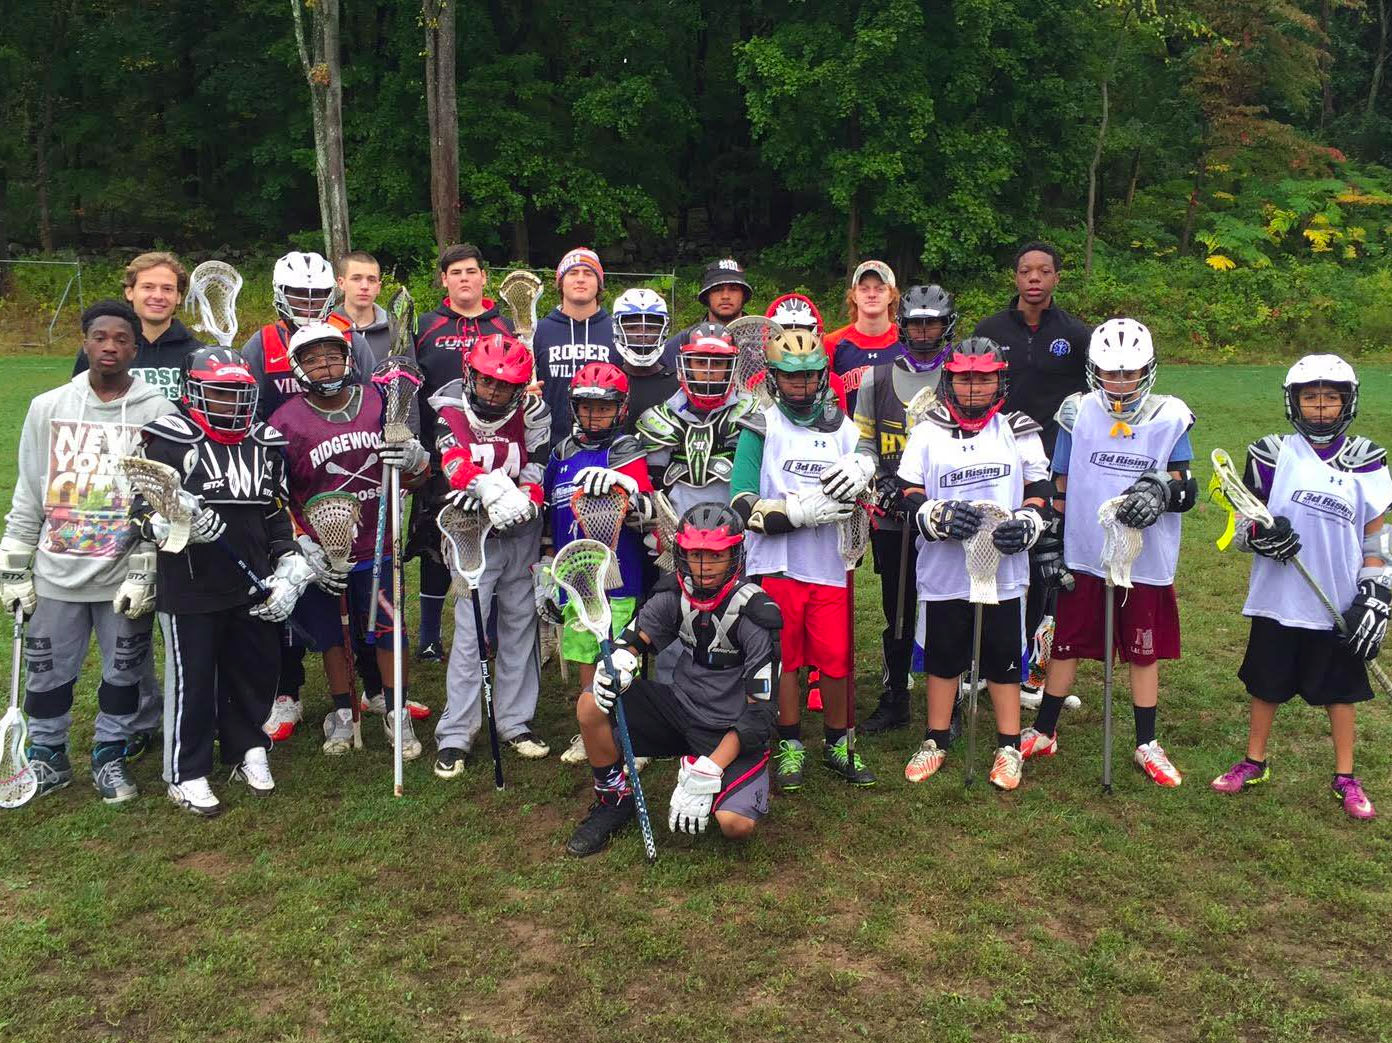 Sojourner Truth boys involved with Harlem Lacrosse gathered on the playing field.